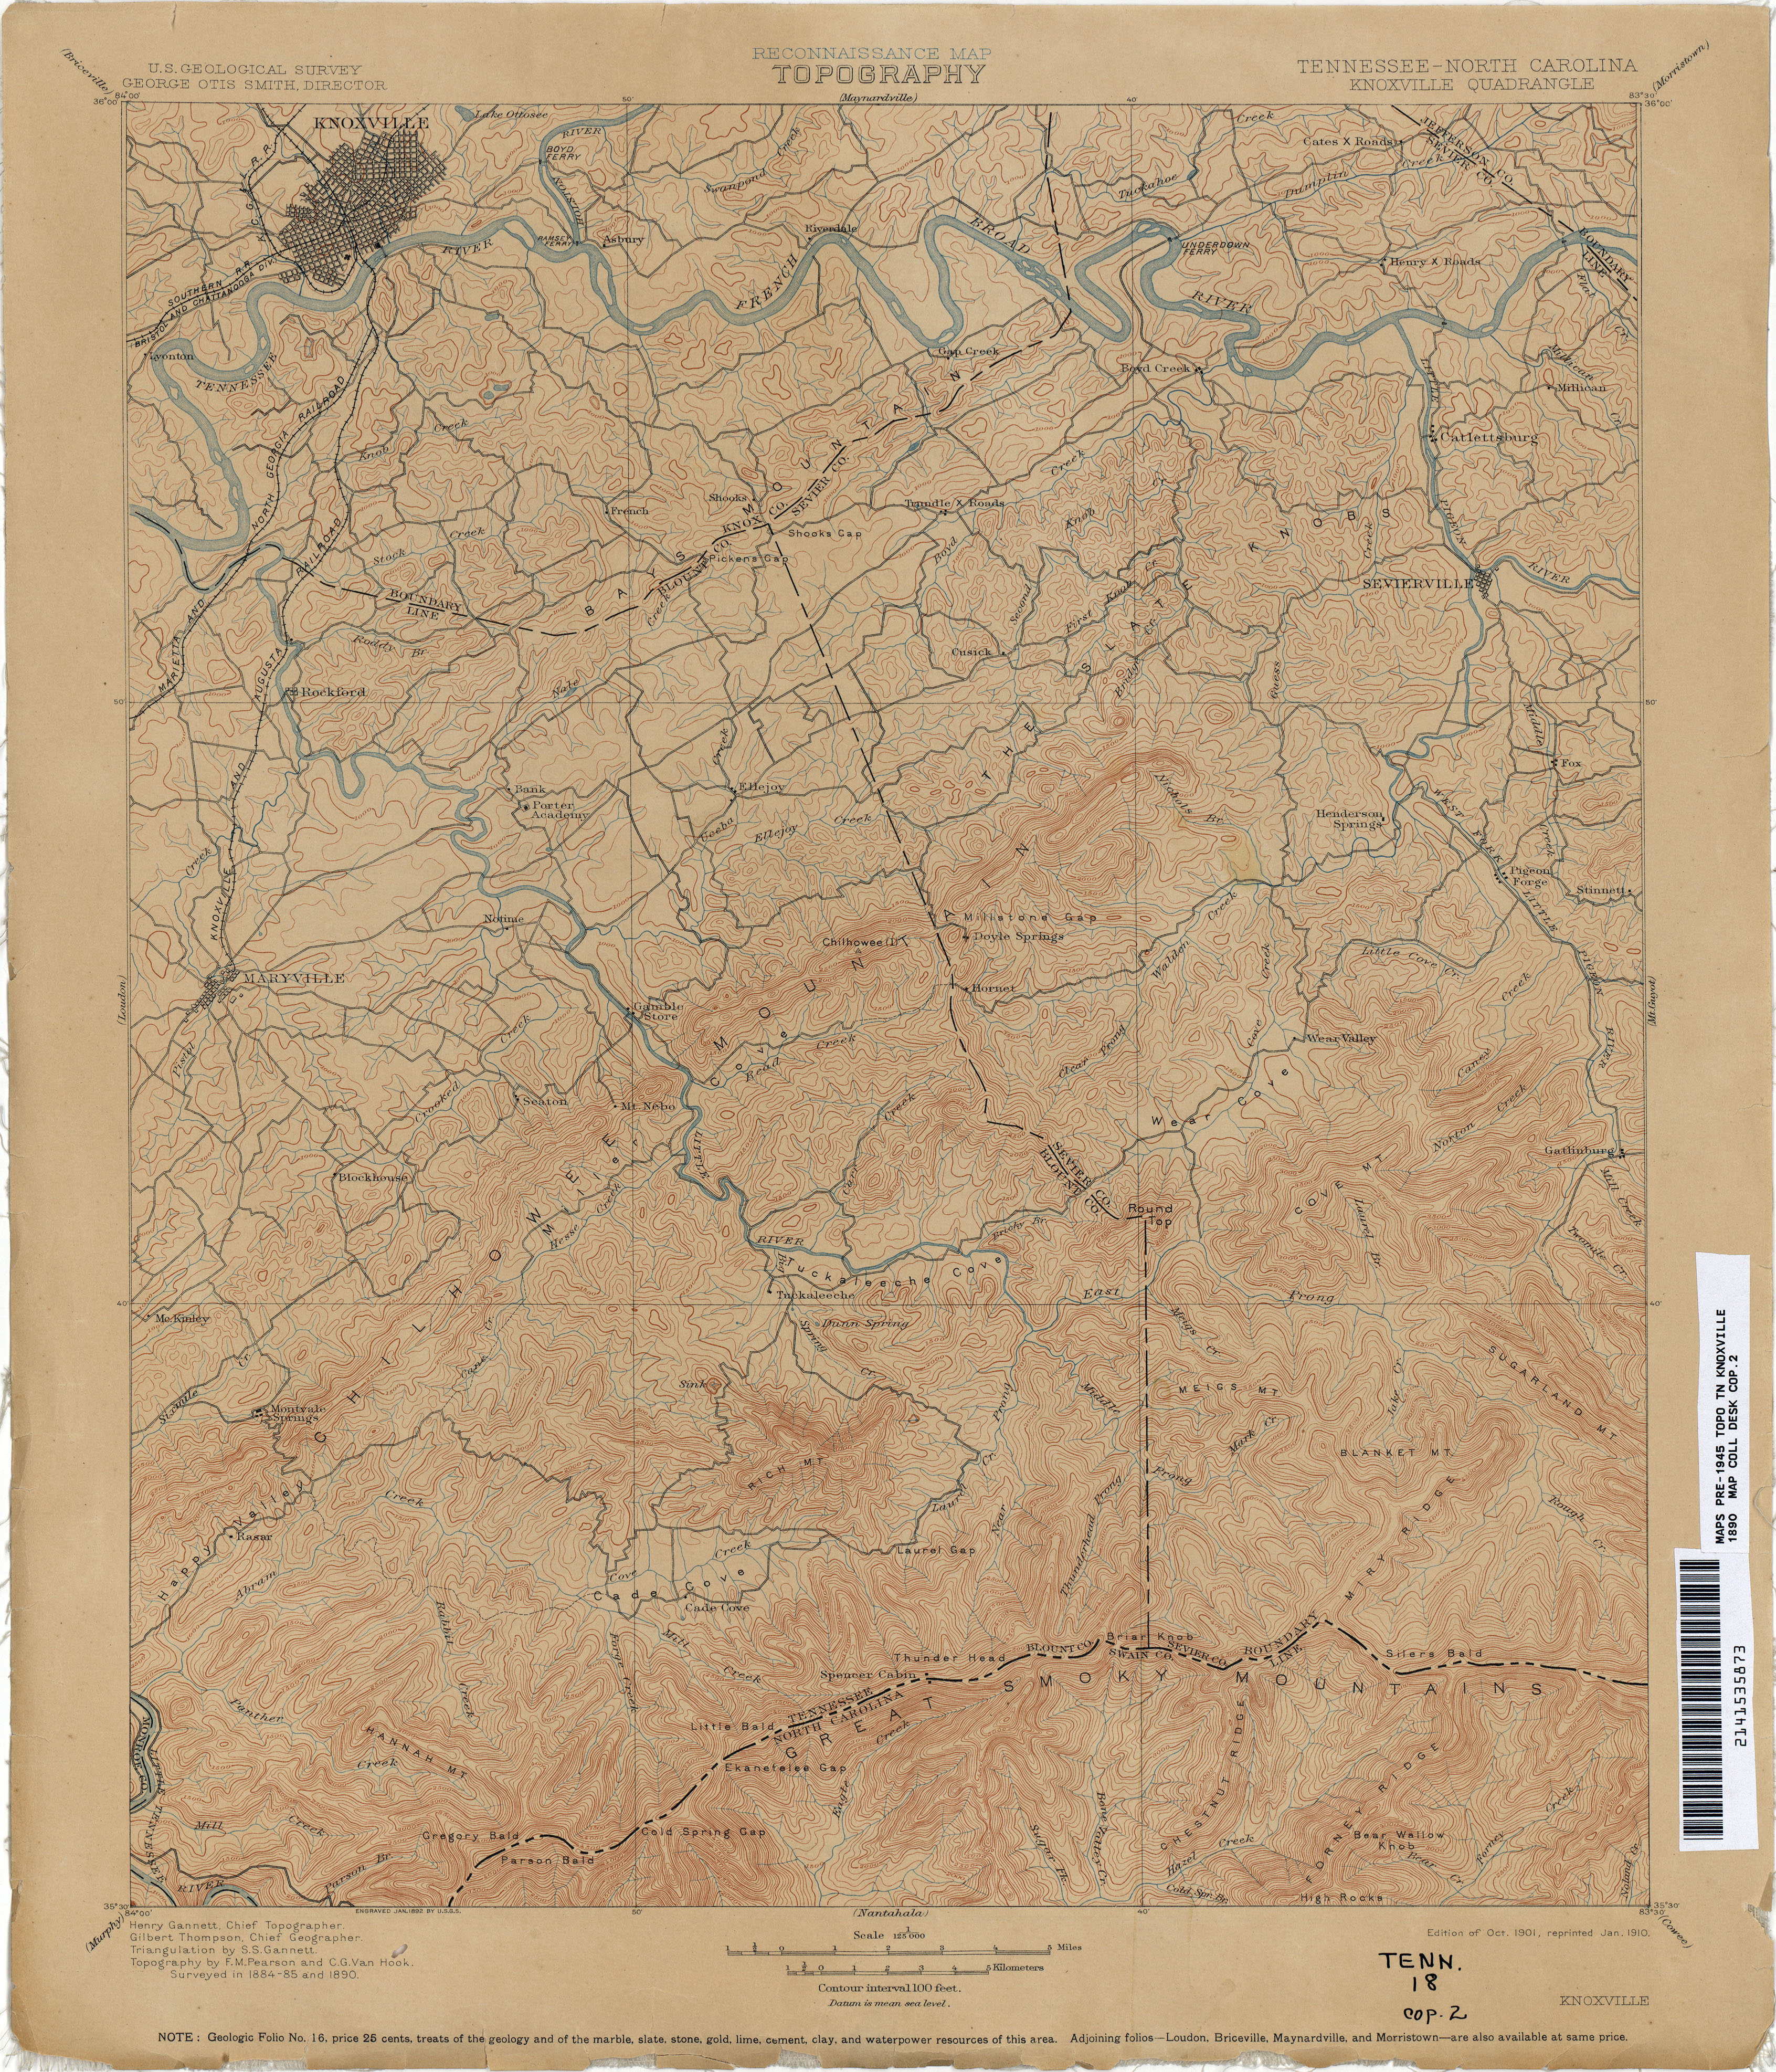 Tennesse Historical Topographic Maps - Perry-Castañeda Map